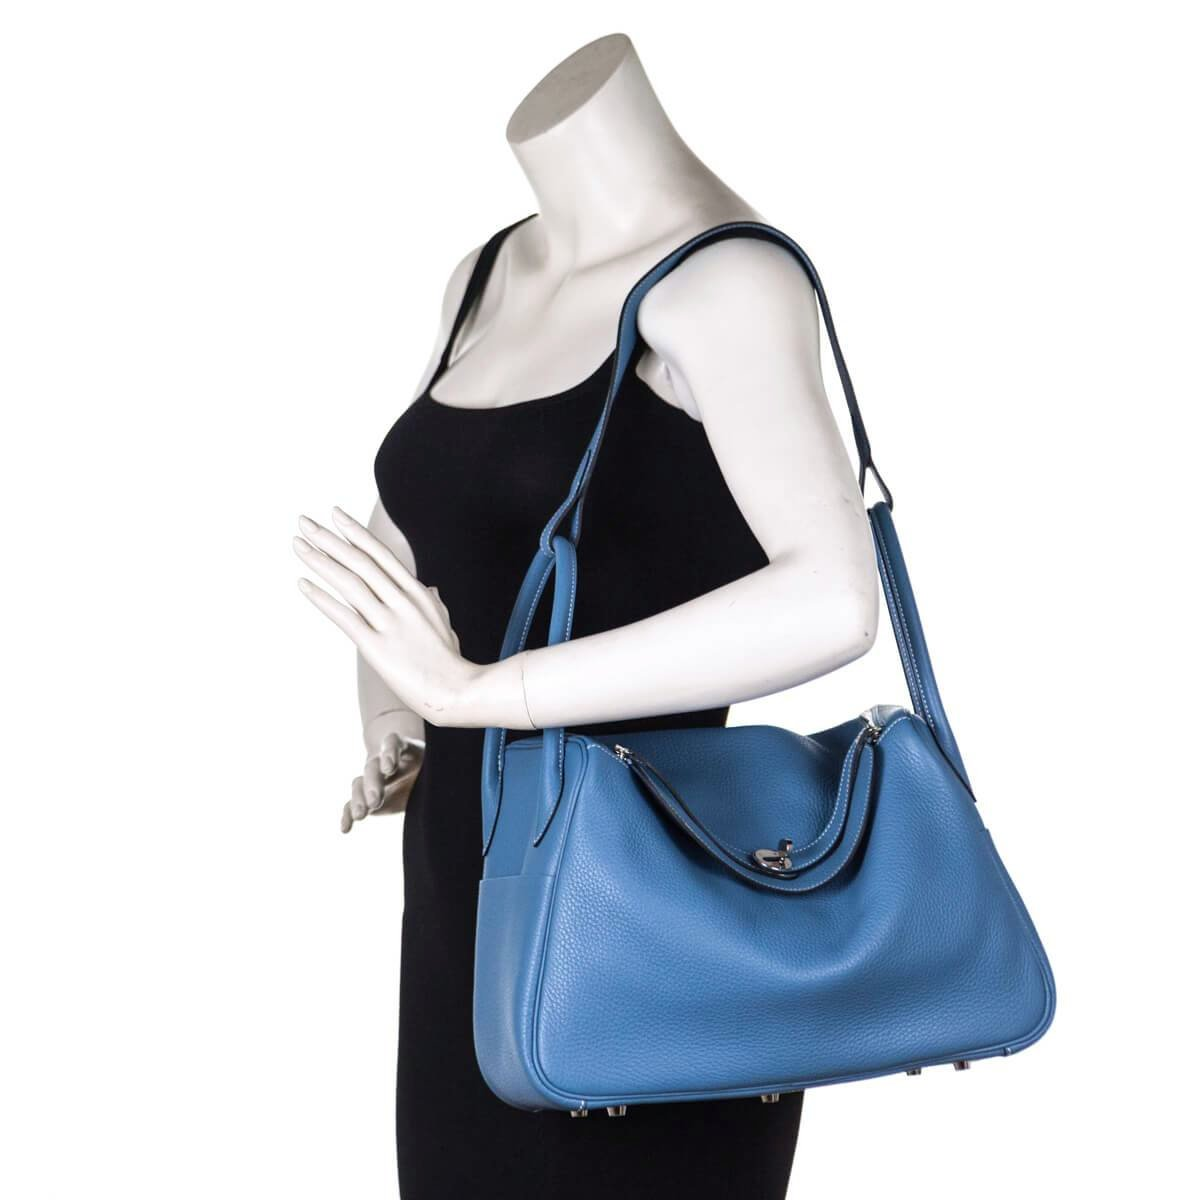 ... Hermes Blue Jeans Clemence Taurillon Lindy 34 - LOVE that BAG - Preowned  Authentic Designer Handbags 25d43d067f2fa